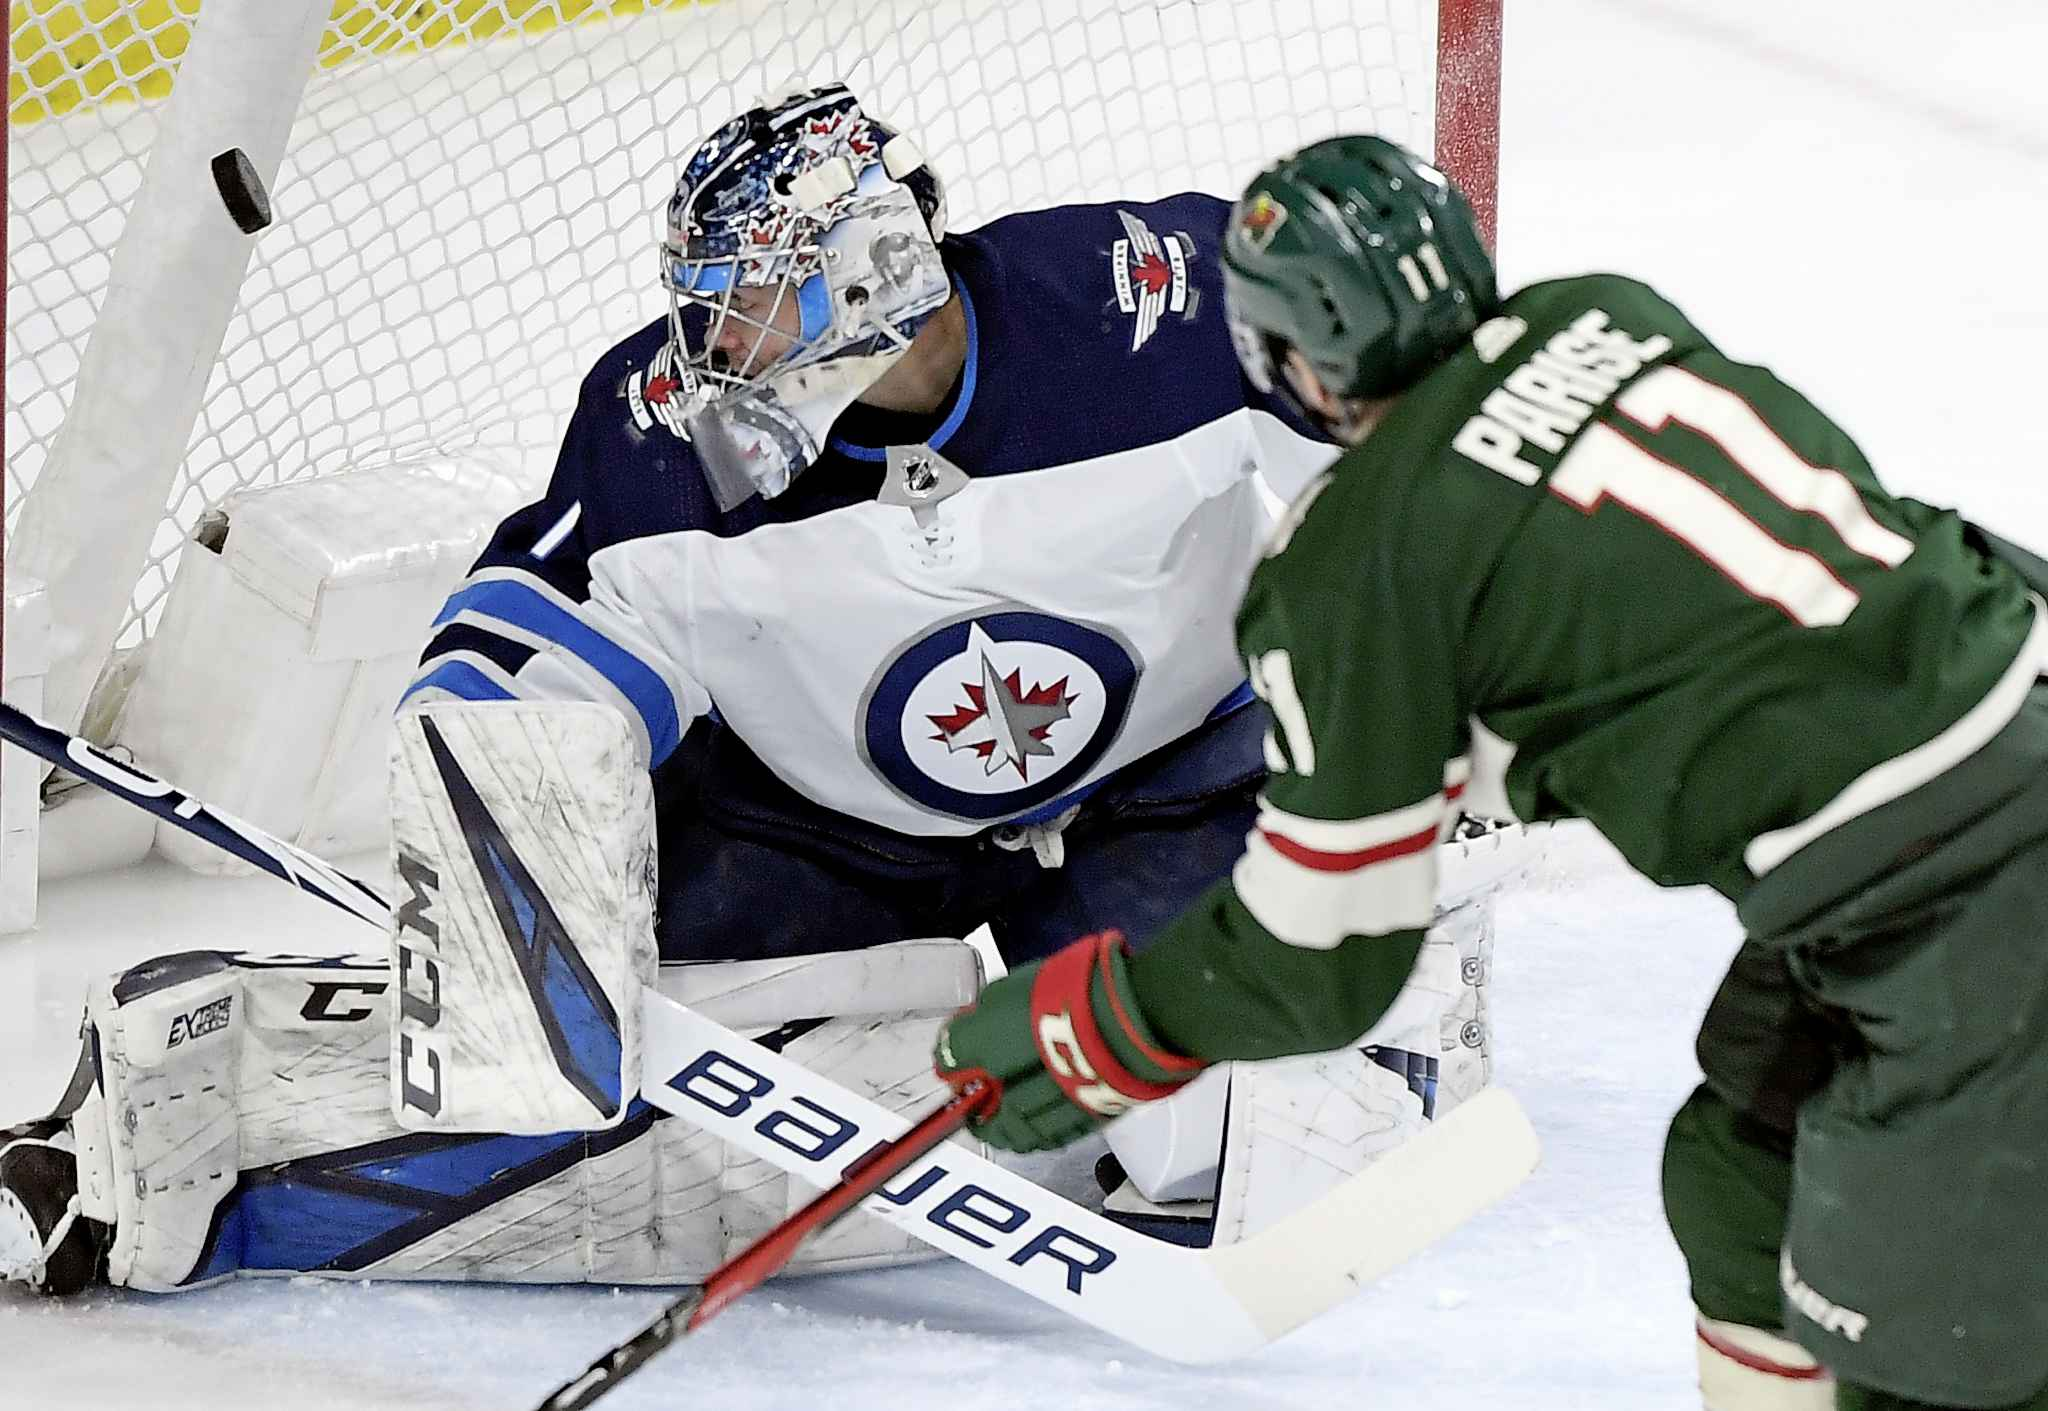 """HANNAH FOSLIEN / THE ASSOCIATED PRESS</p><p>""""I've had tough games before in the American League, I've had tough games before in the NHL, so I know how to deal with it. It's another game you add to your experience,"""" said Comrie.</p>"""